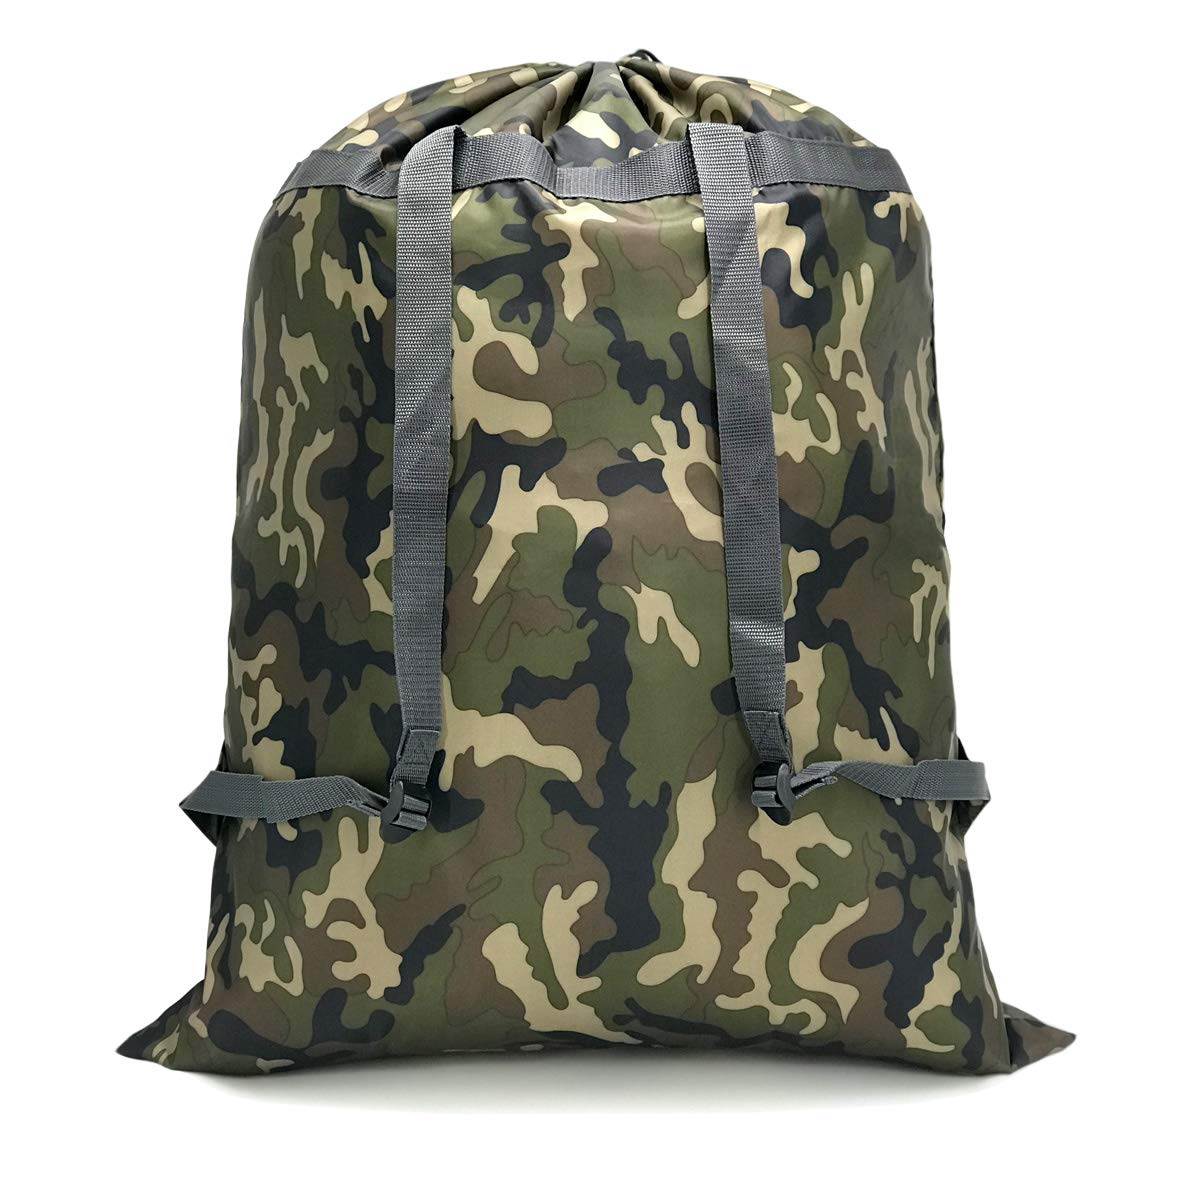 Extra Large Laundry Bag [26''x34''] Sturdy rip and tear resistant polyester material with drawstring closure Ideal machine washable laundry bags for college dorm and apartment dwellers. (Jungle camo)